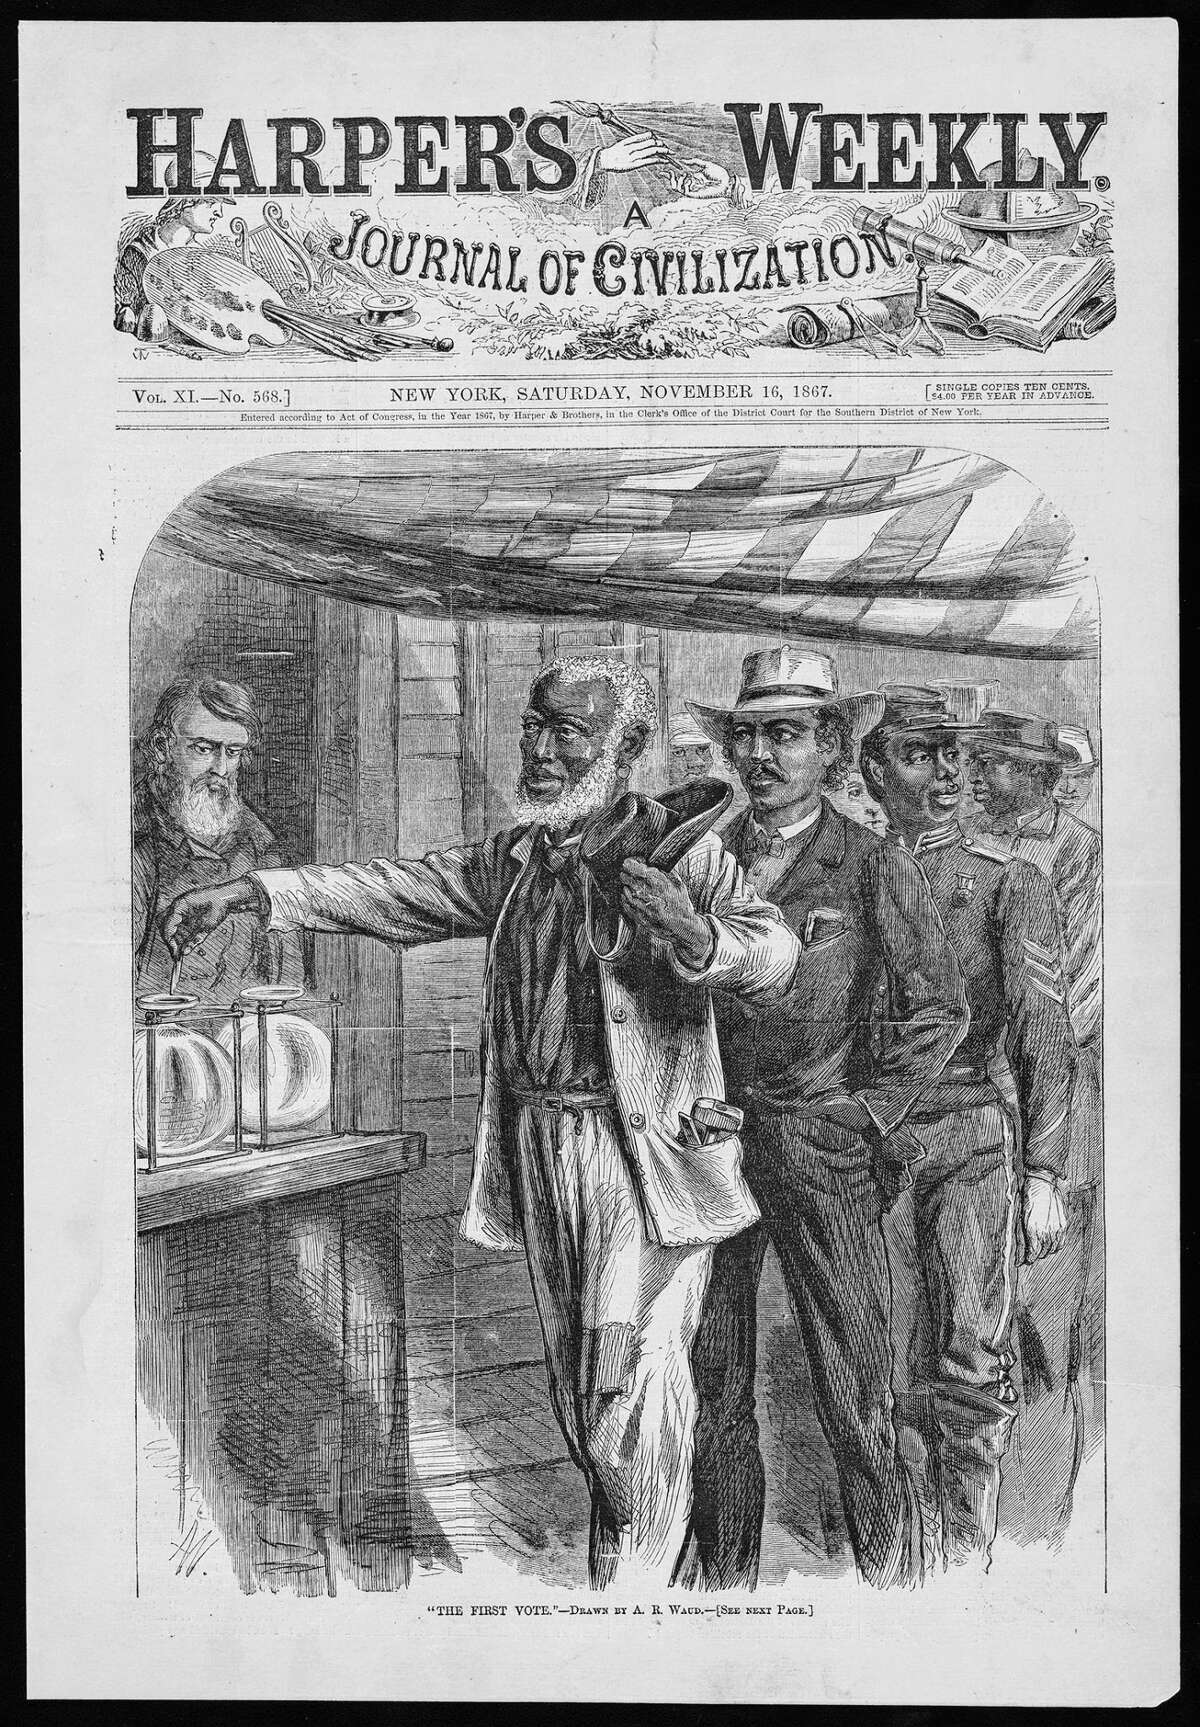 """The cover of """"Harper's Weekly"""" depicts the first Black voting. The image is part of """"Voices and Votes: Democracy in America,"""" a traveling exhibit that is part of the Smithsonian Institution's """"Museum on Main Streets"""" program."""